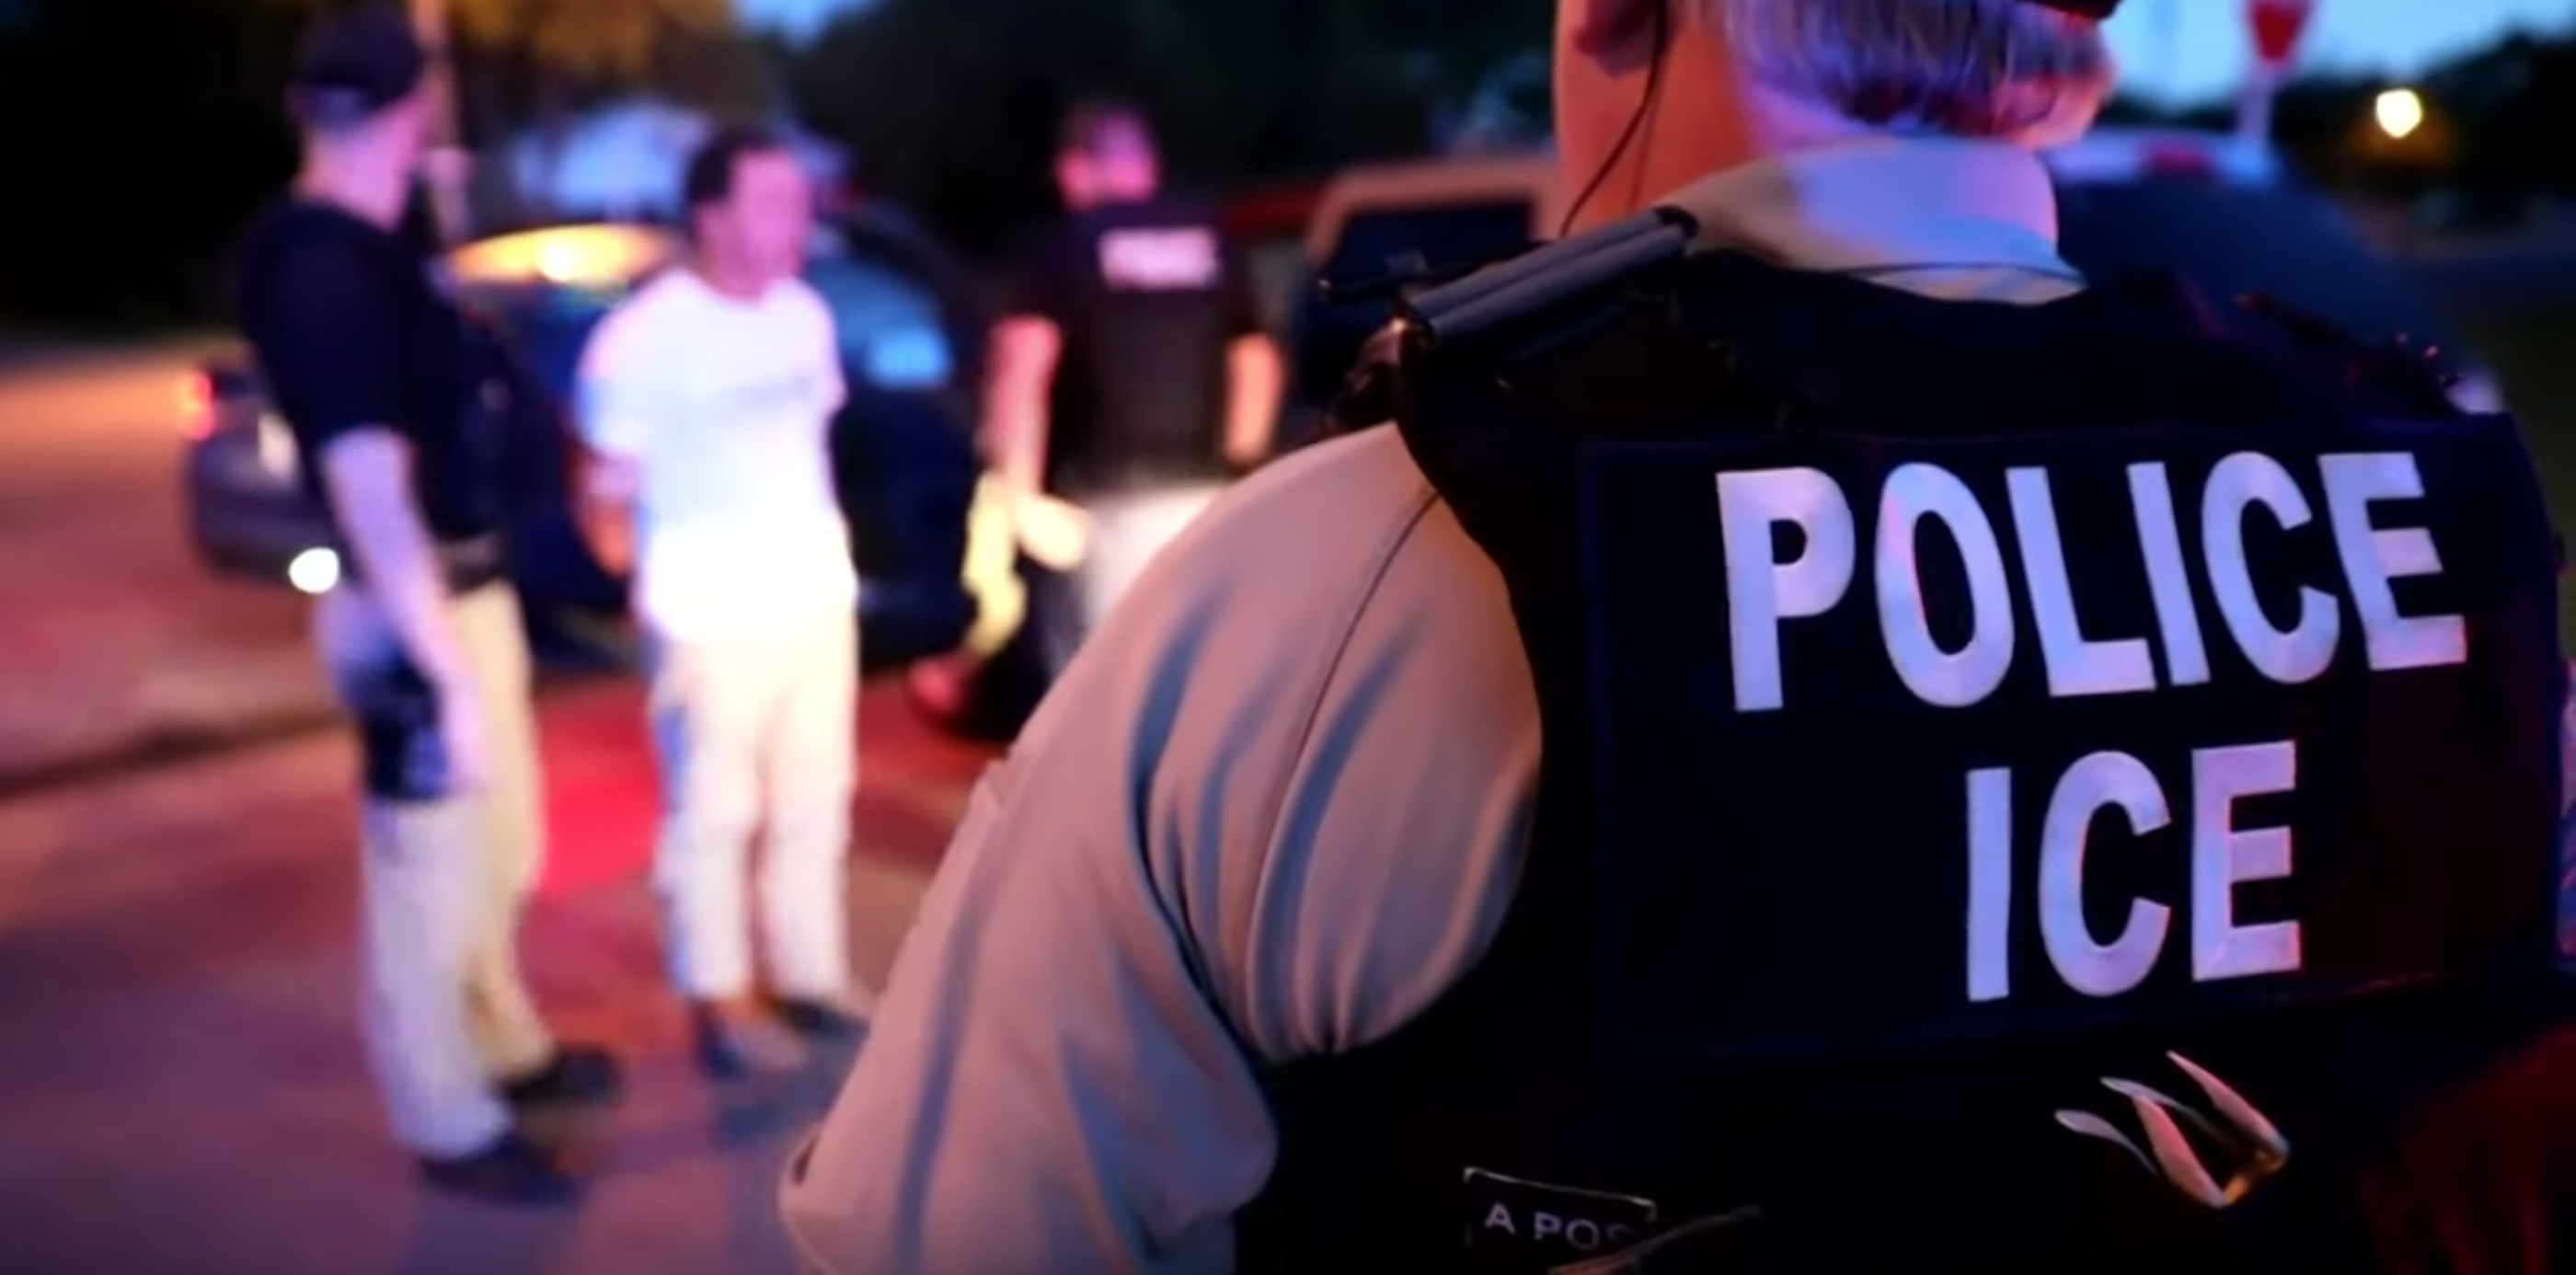 """Texas police work with ICE on """"road work"""" campaign. Bust more than 60 illegal immigrants."""